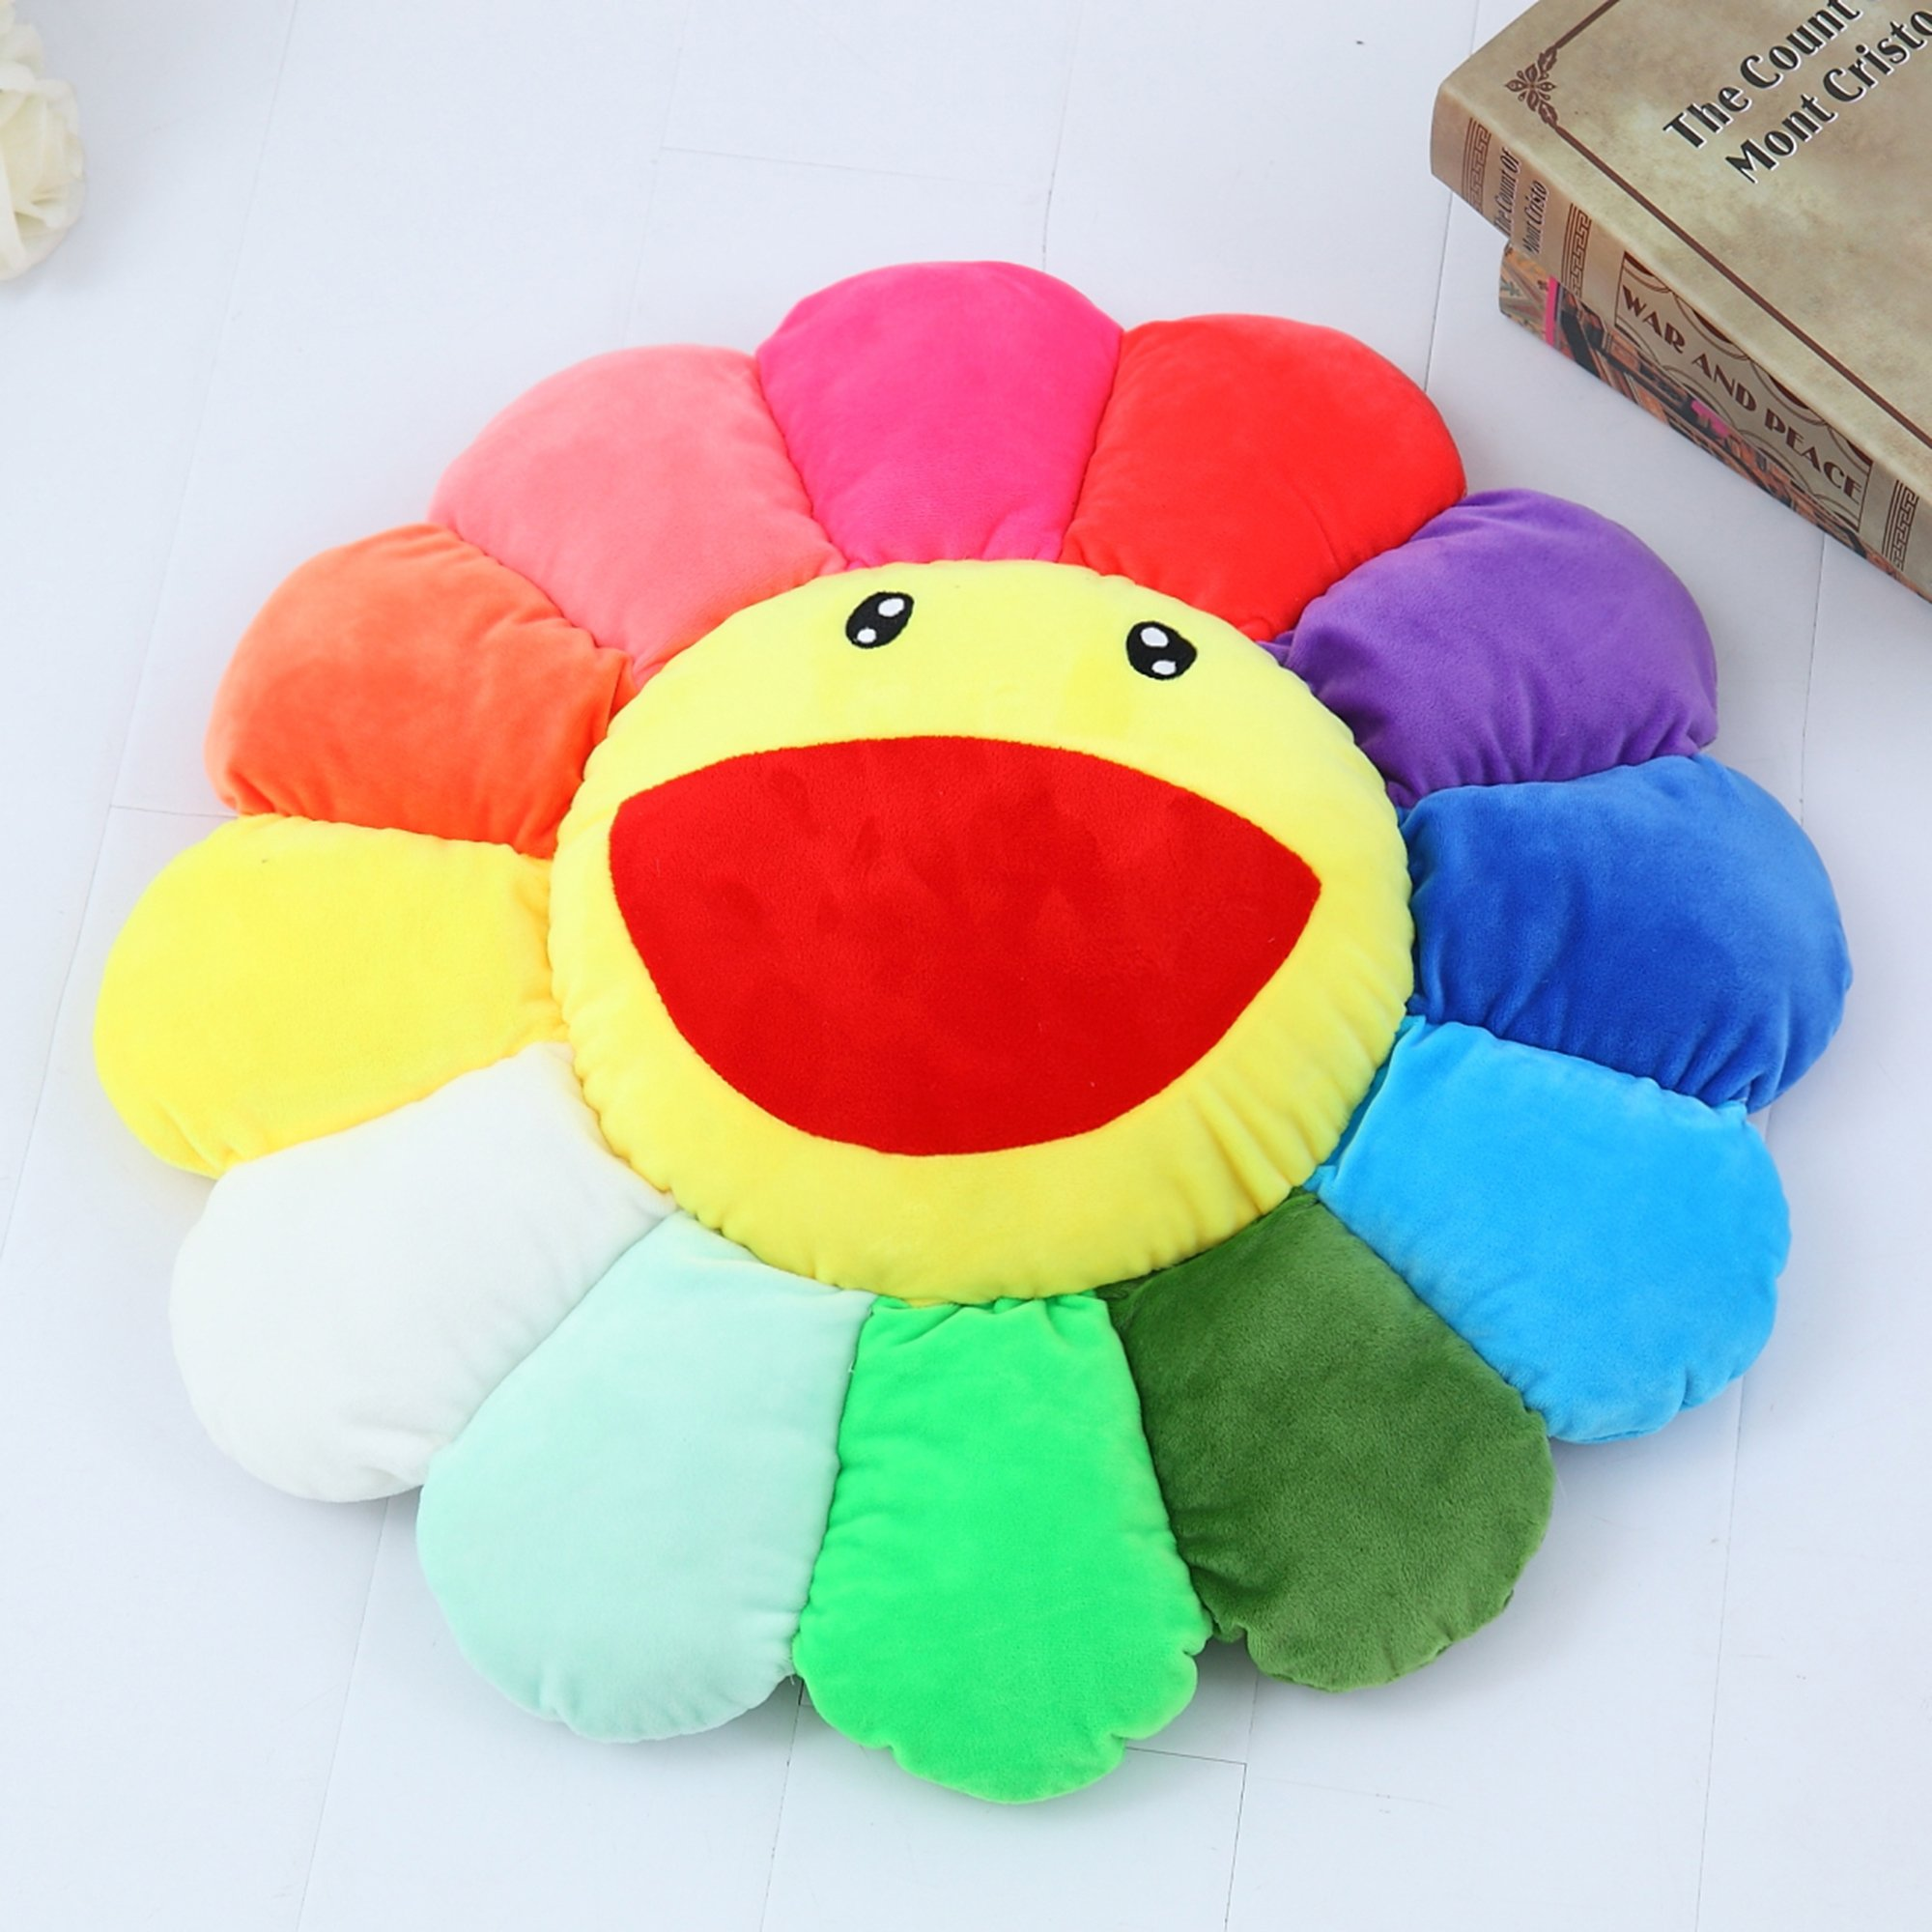 Vercart Cute Cuddly Hugging Pillow Stuffed Animals Plush Soft Cushion Pillow Toy Multicolor 22 Inches